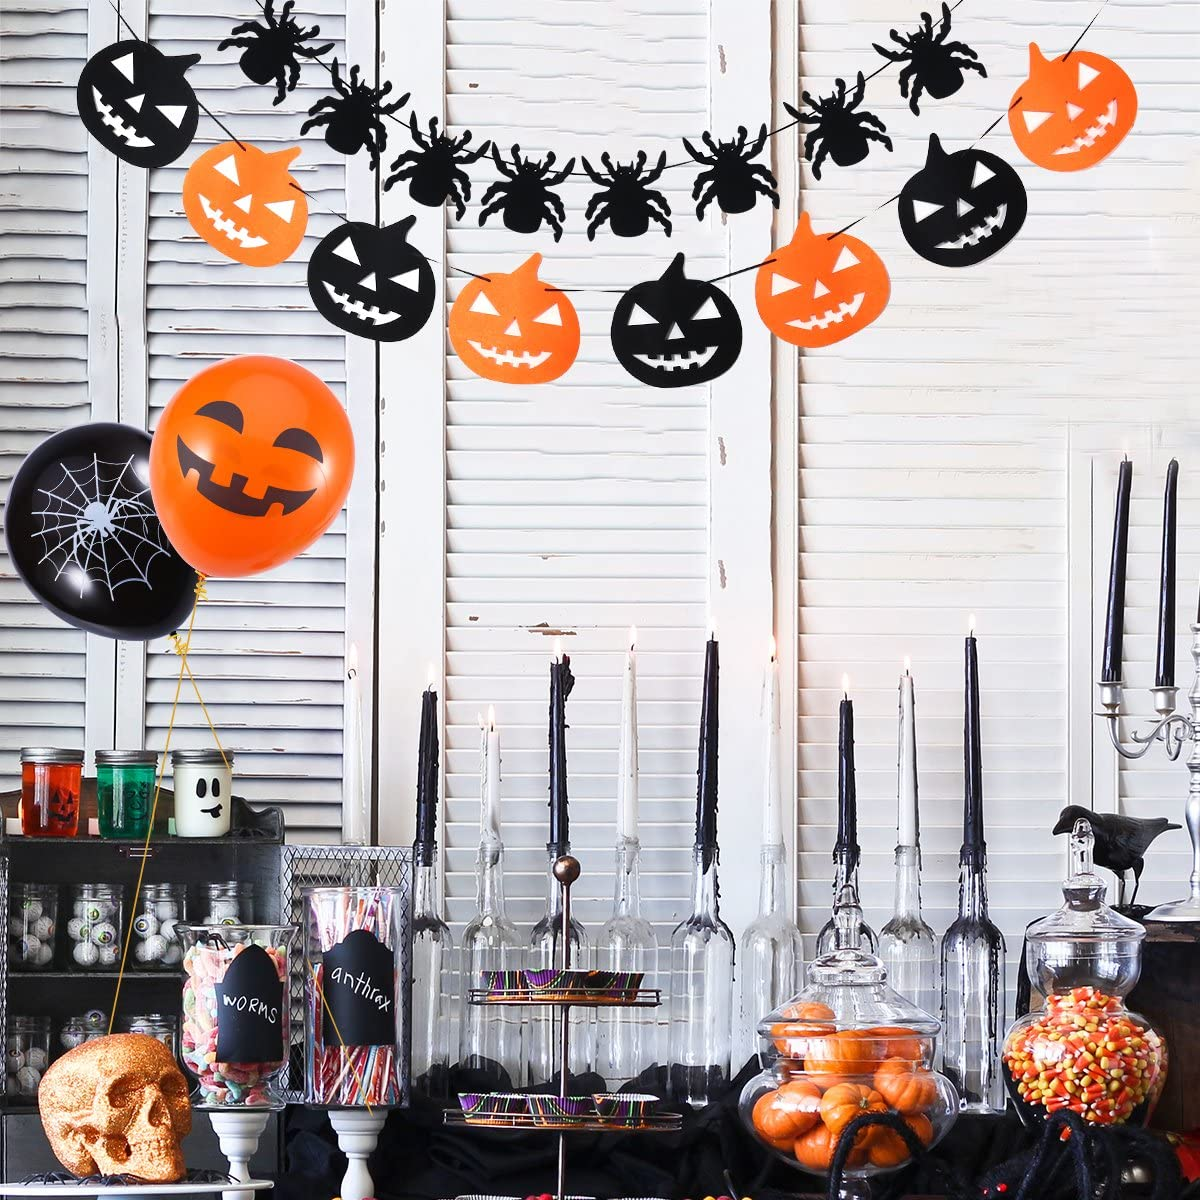 Halloween Hanging Swirl Decorations Halloween Banners Balloons Garlands for Halloween Party Decor Home Ceiling Doorway Decor